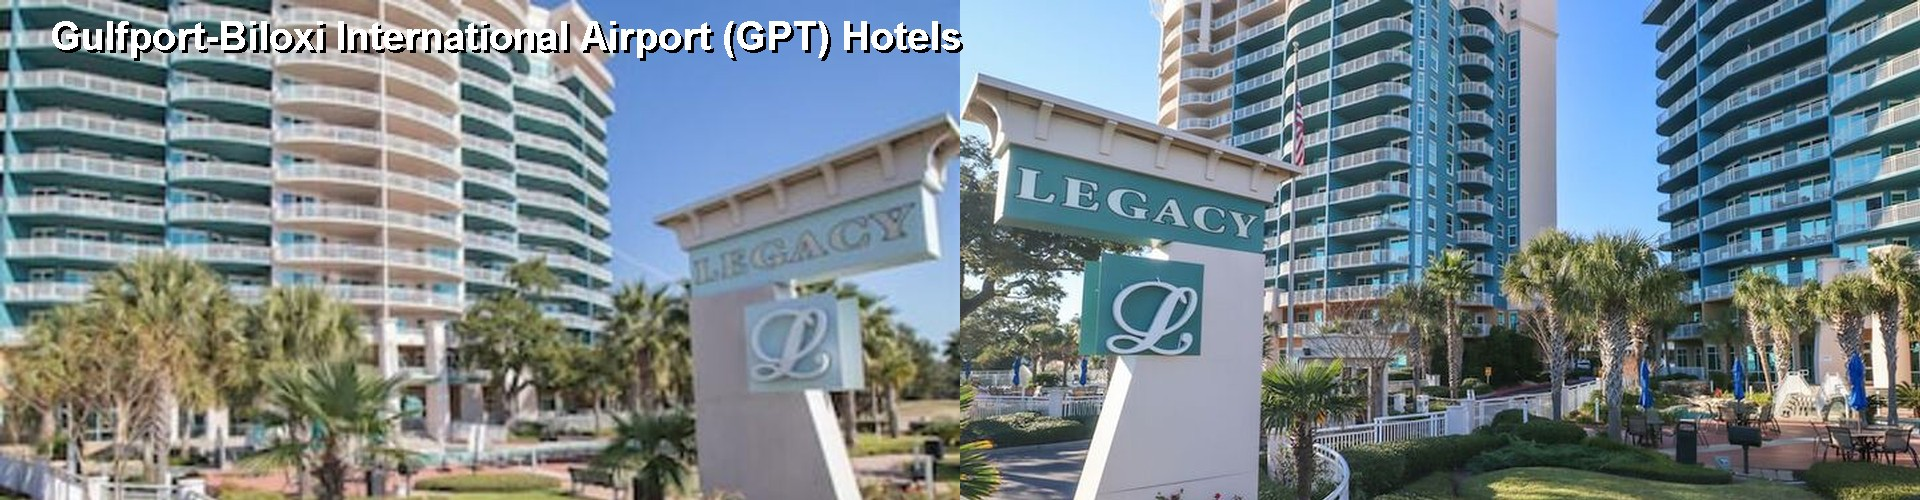 5 Best Hotels near Gulfport-Biloxi International Airport (GPT)